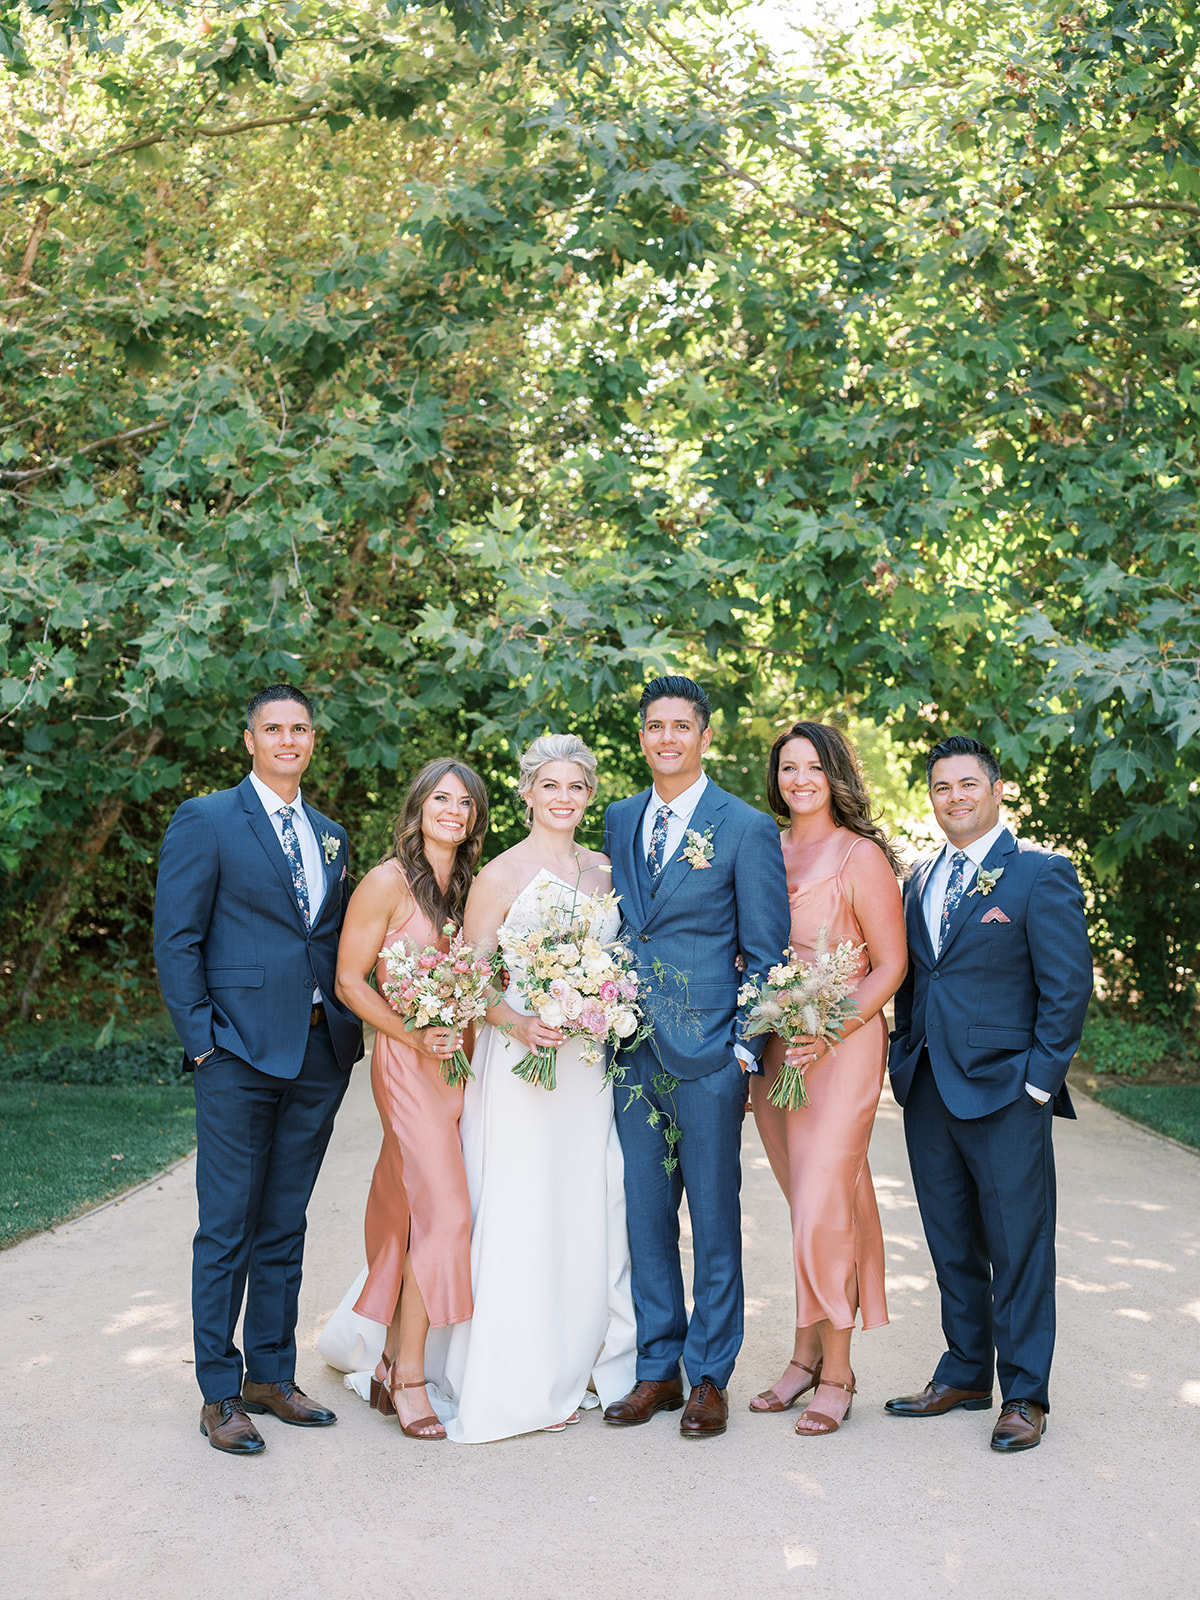 bride and groom standing with wedding party on outdoor pathway